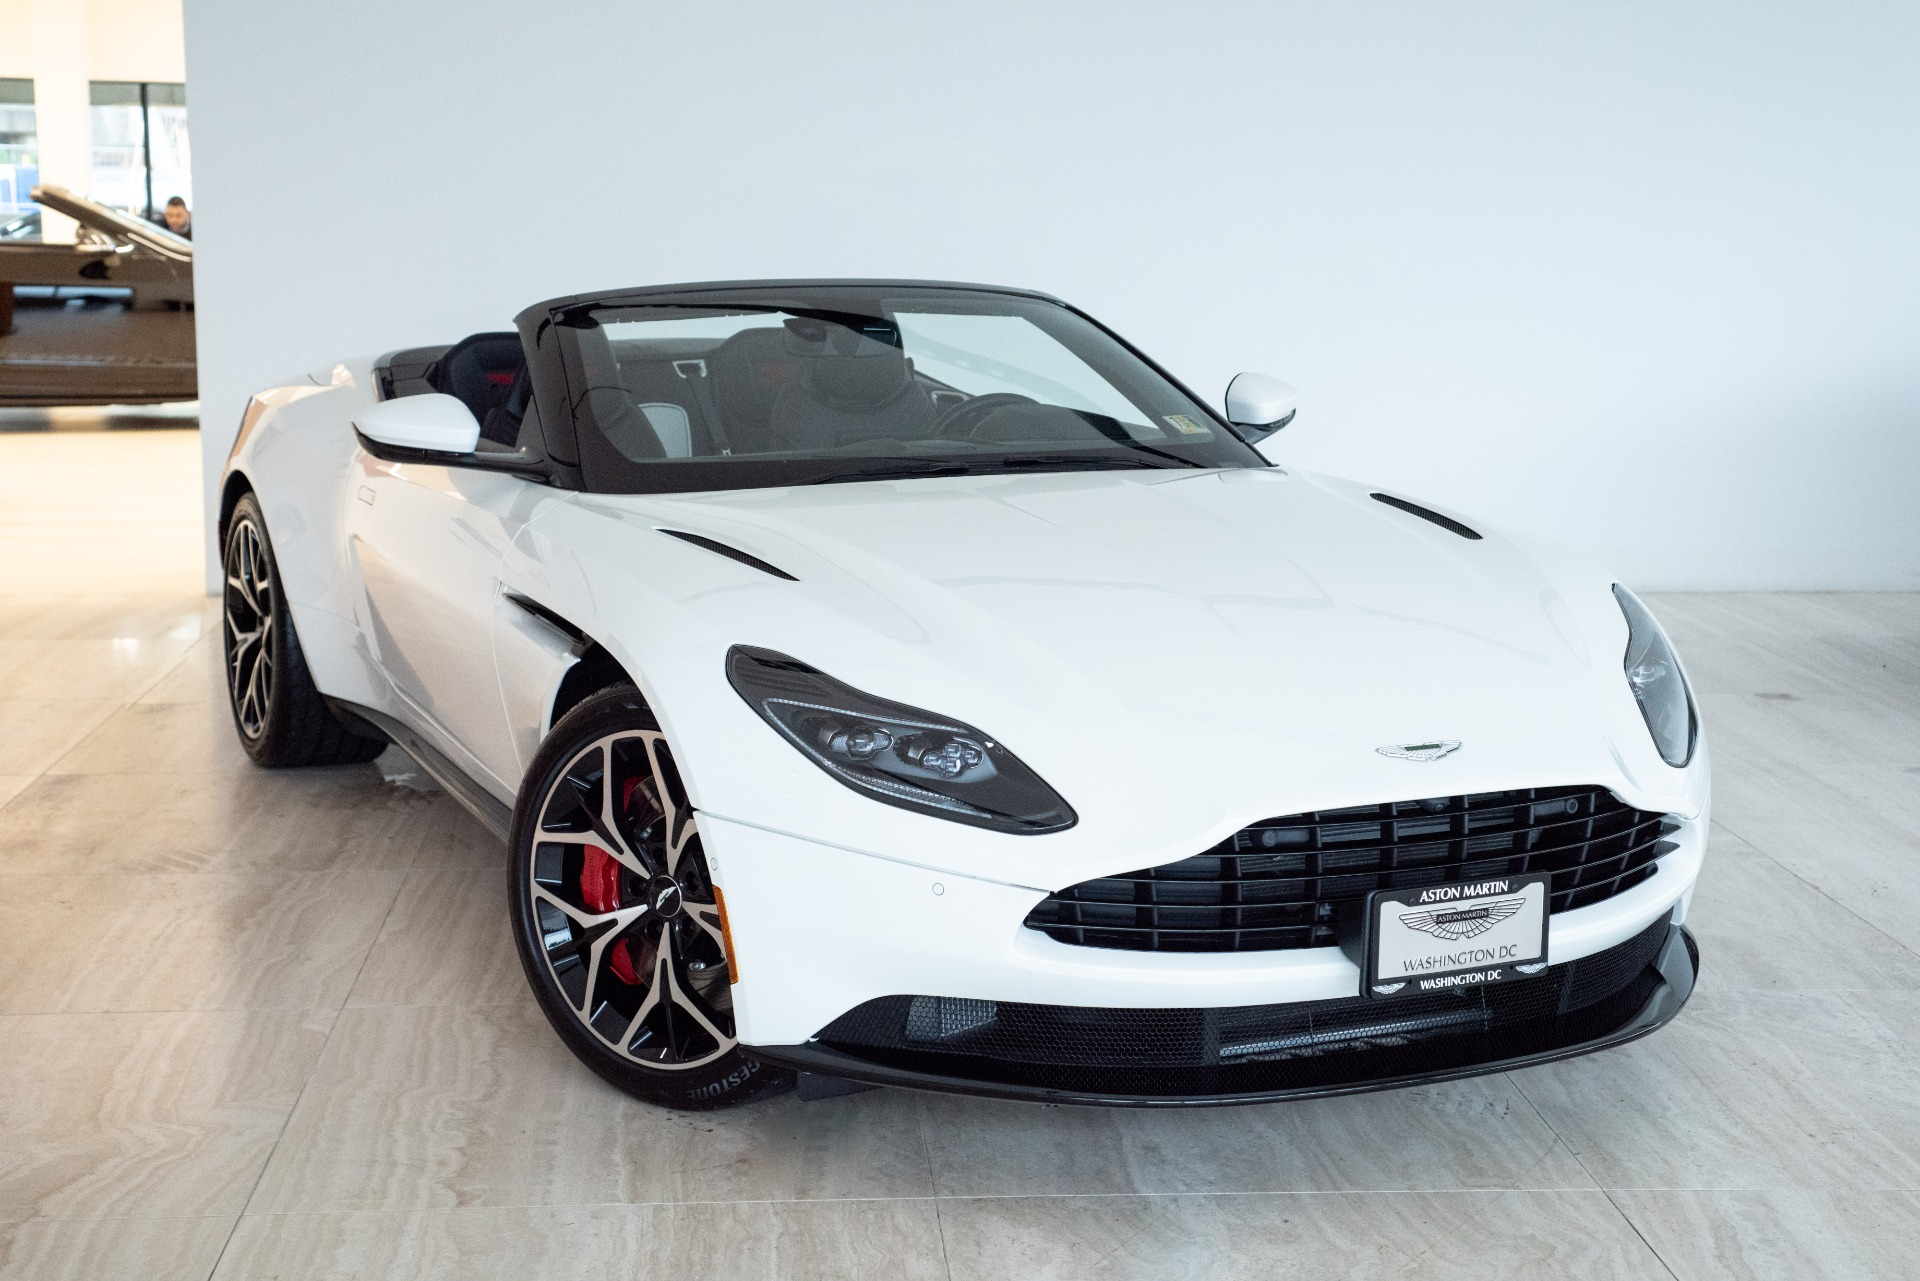 2019 Aston Martin Db11 Volante Stock 9nm06191 For Sale Near Vienna